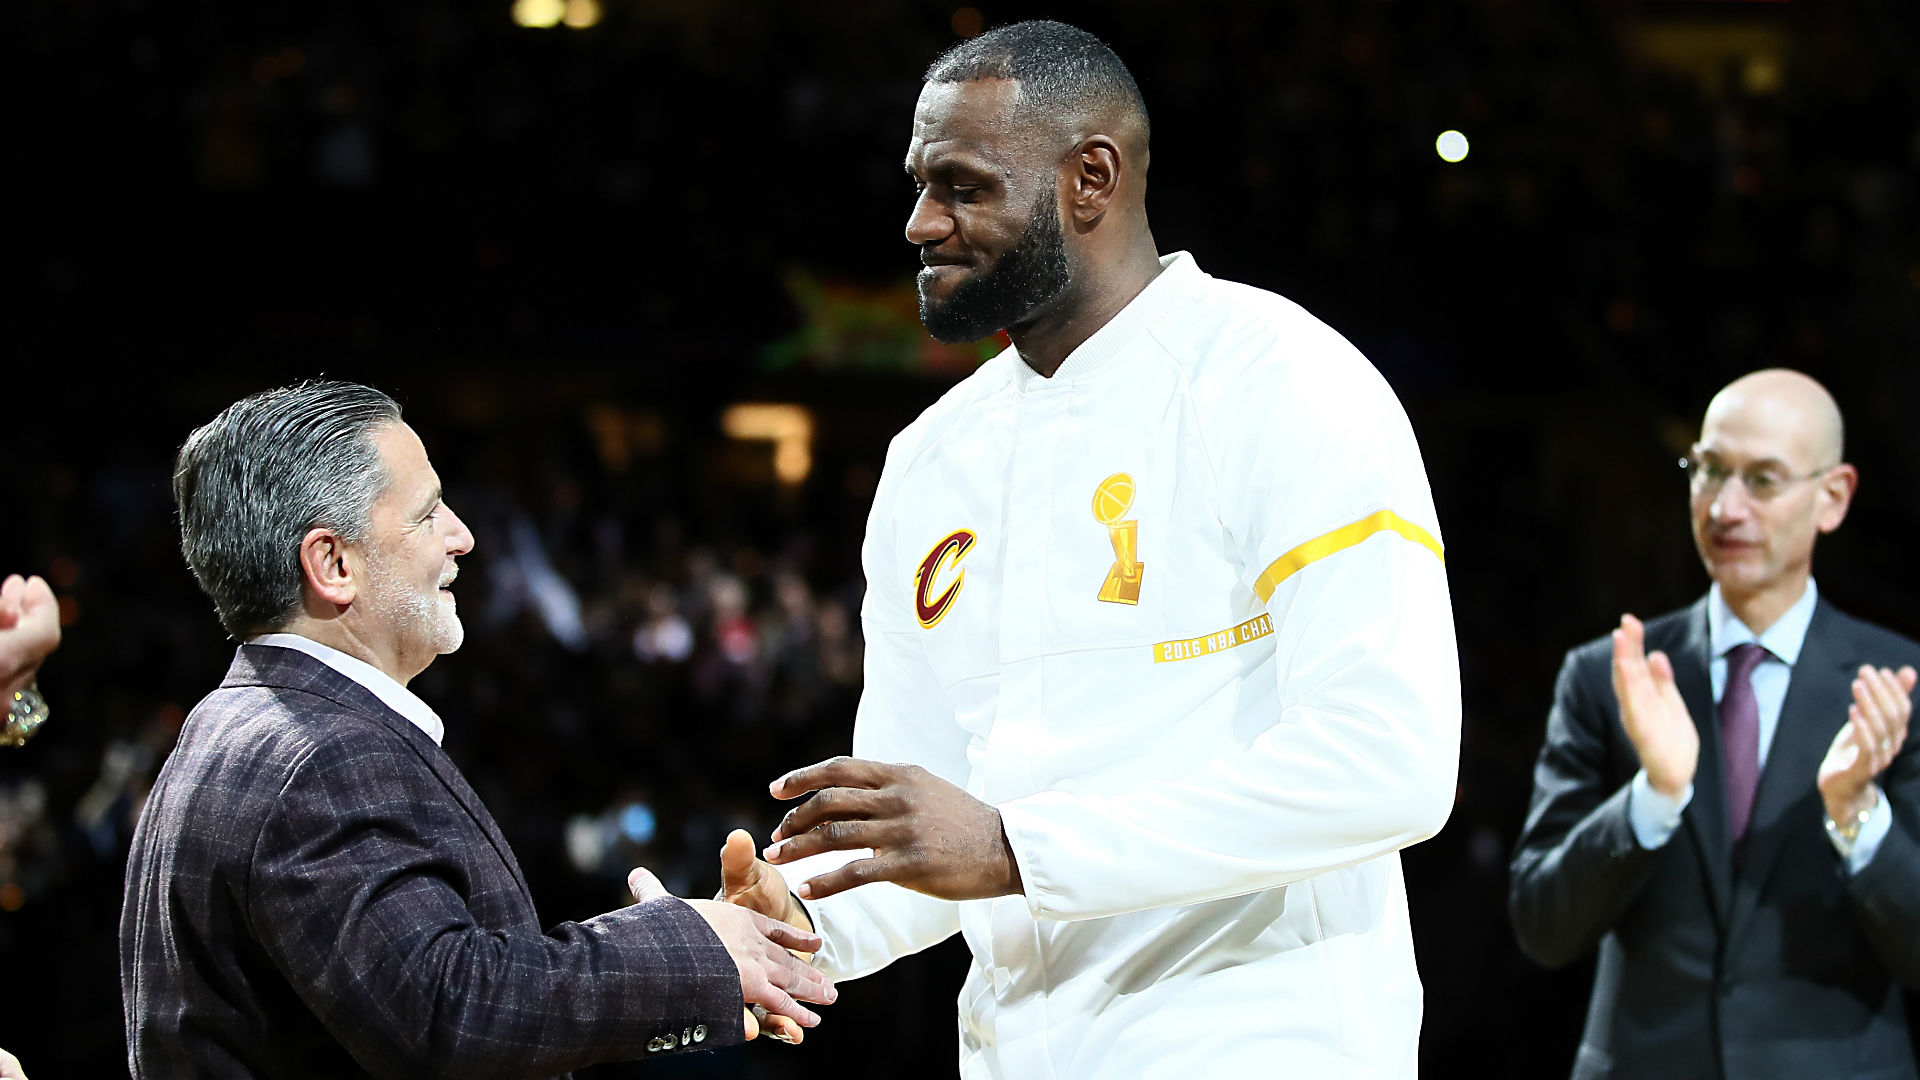 Cavaliers owner, Billups meeting for 2nd time